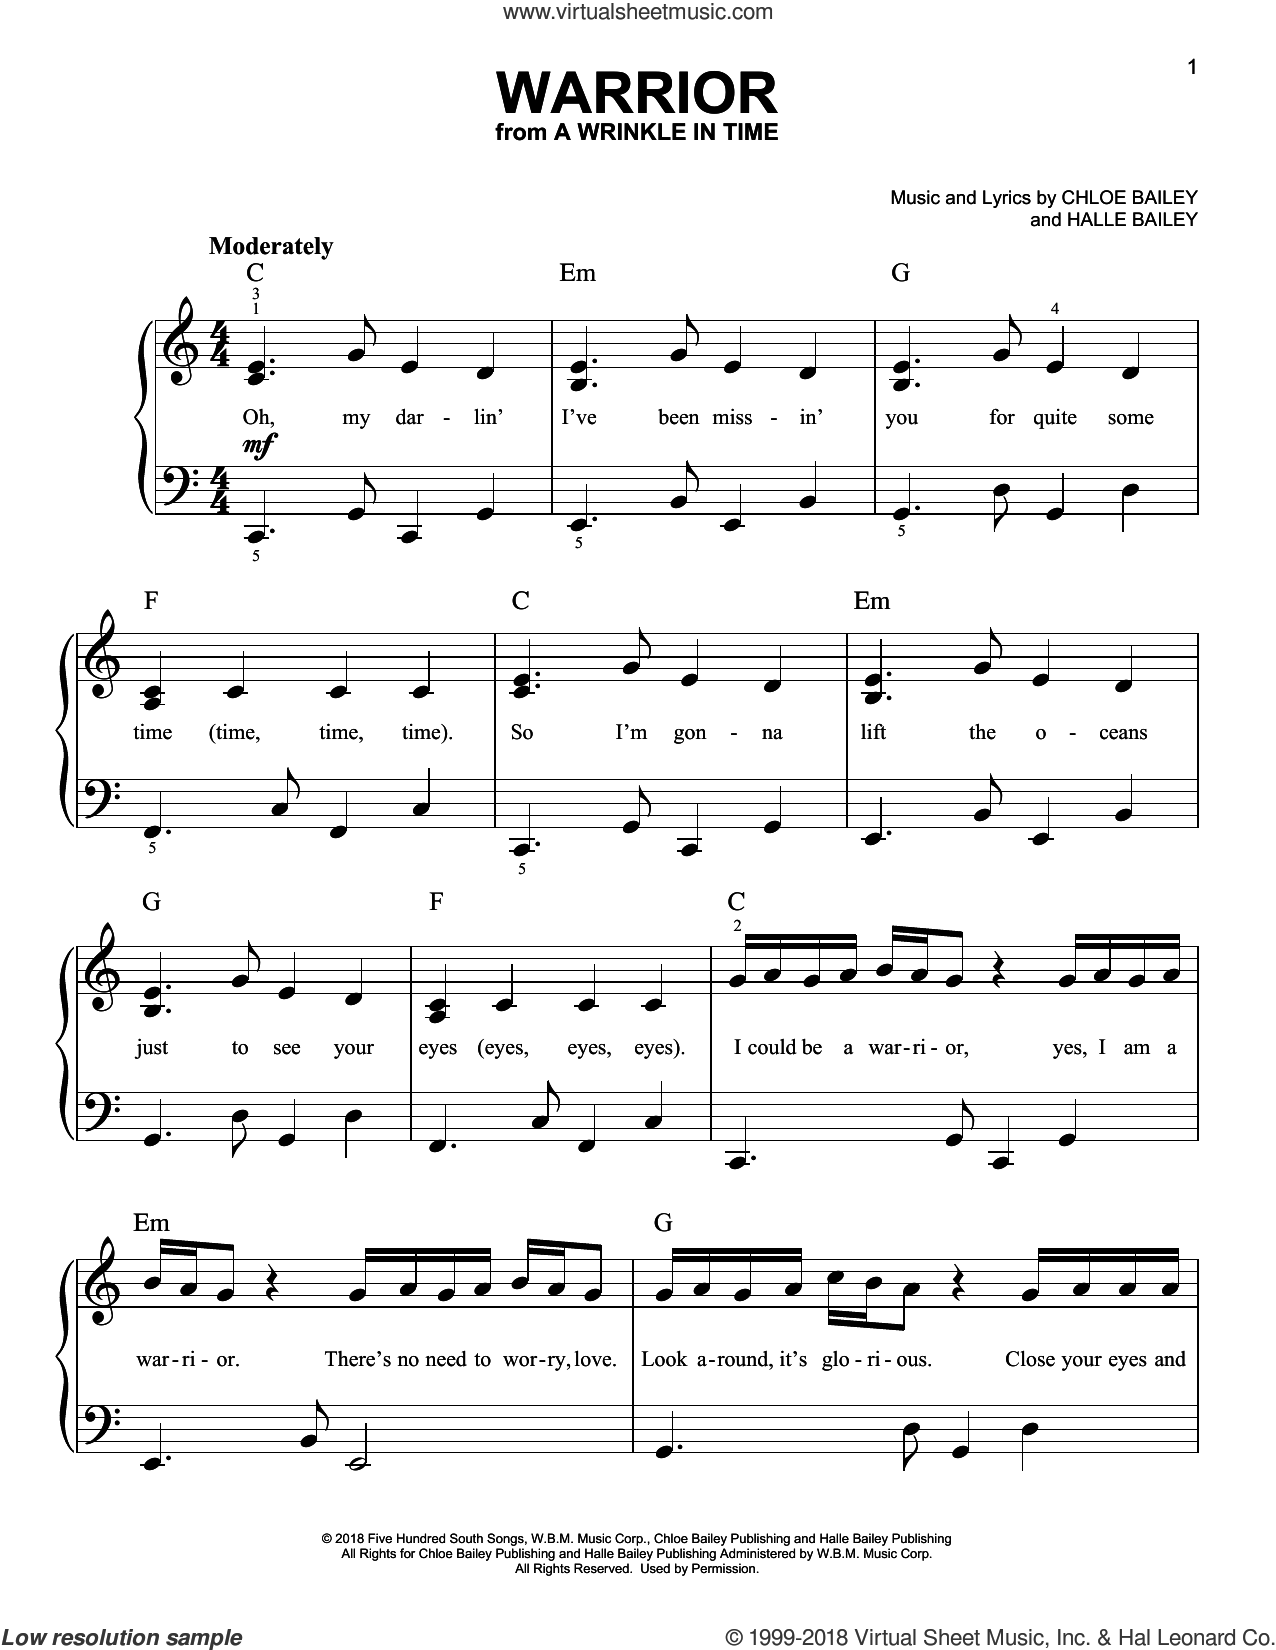 Warrior (from A Wrinkle In Time) sheet music for piano solo by Chloe Bailey and Halle Bailey, easy skill level